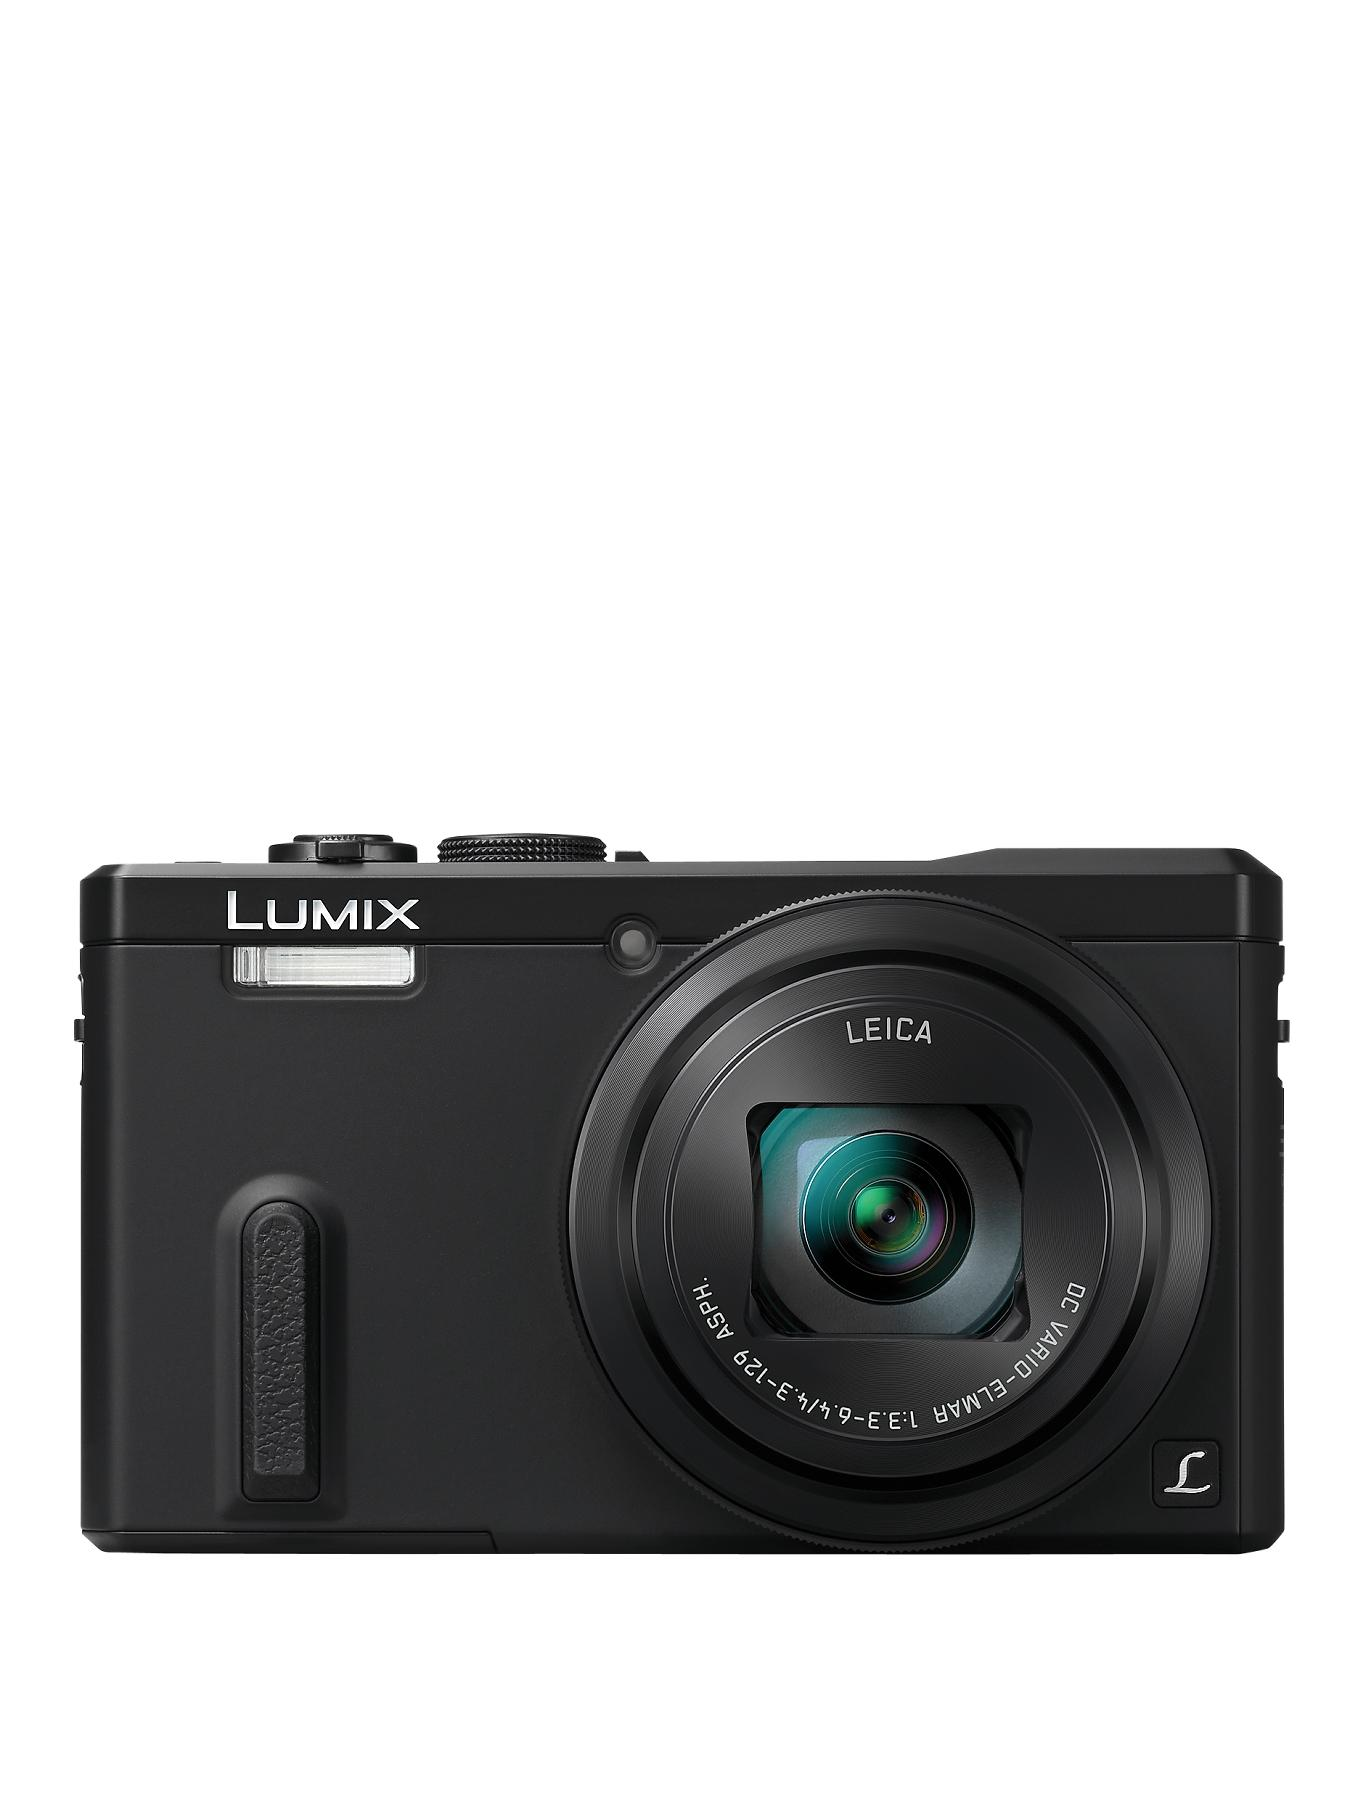 Panasonic DMC-TZ60EB-K Super Zoom Compact Camera